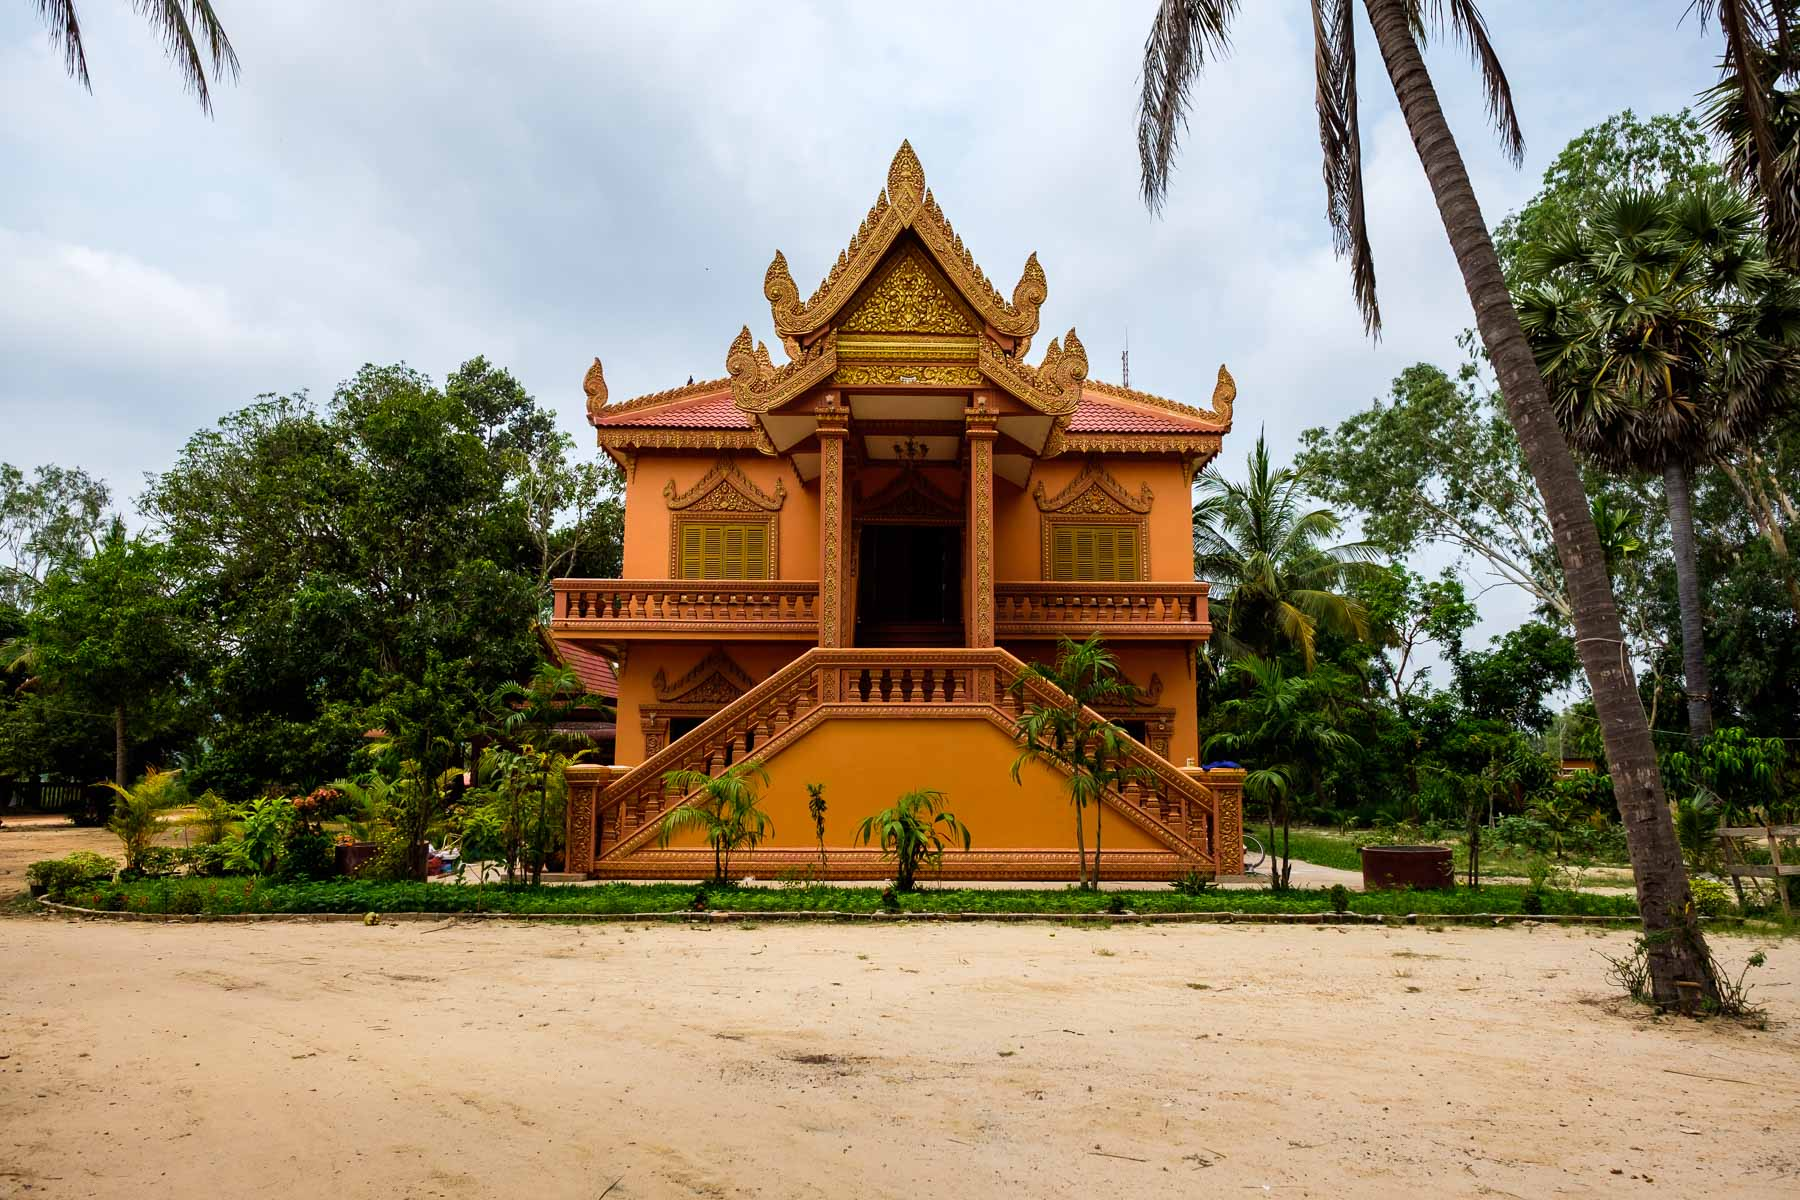 Building at Monastery Siem Reap Cambodia